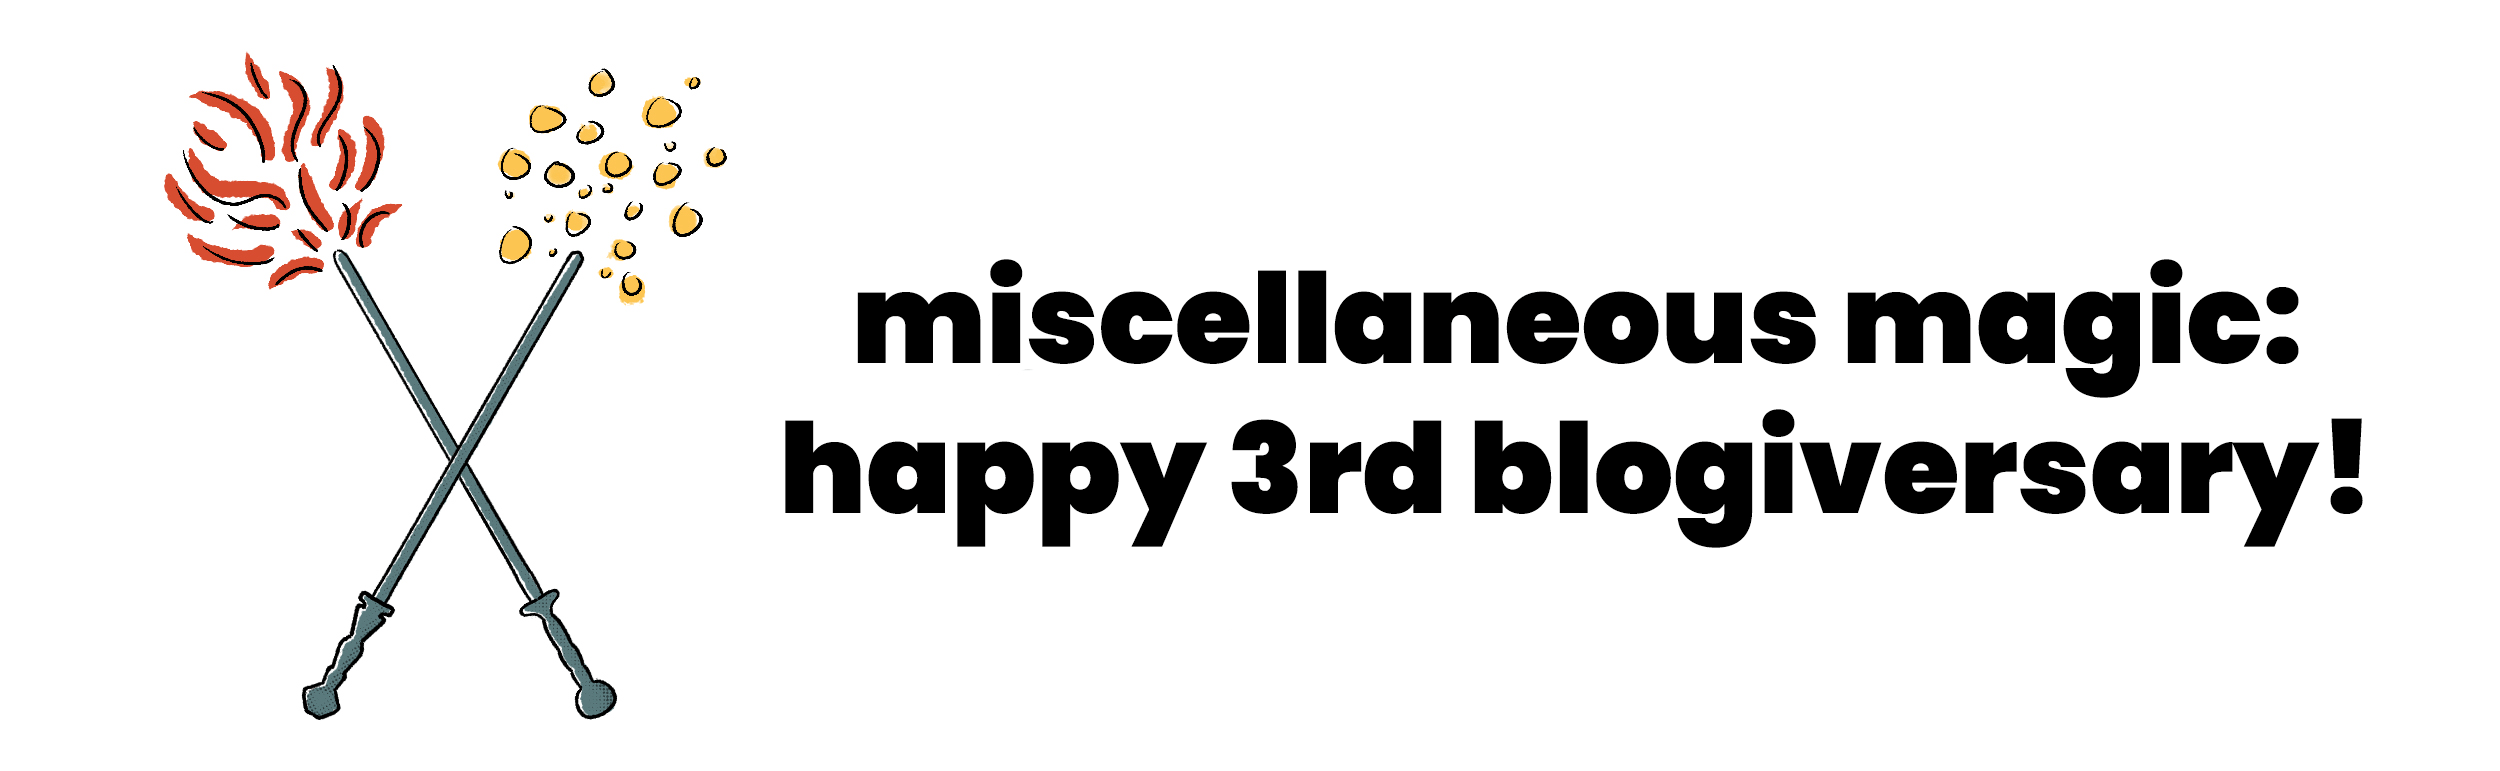 Third Blogiversary Banner